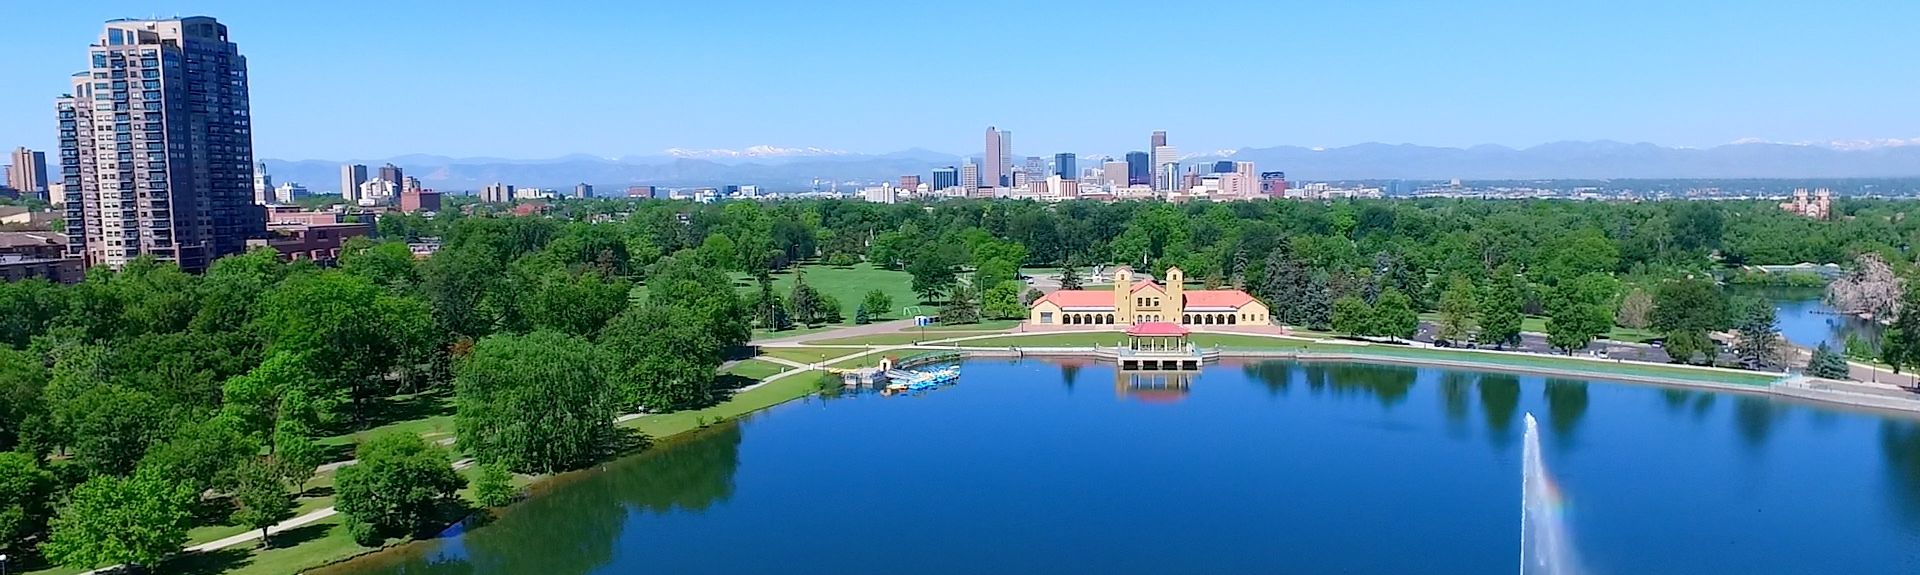 City Park West, Denver, CO, USA